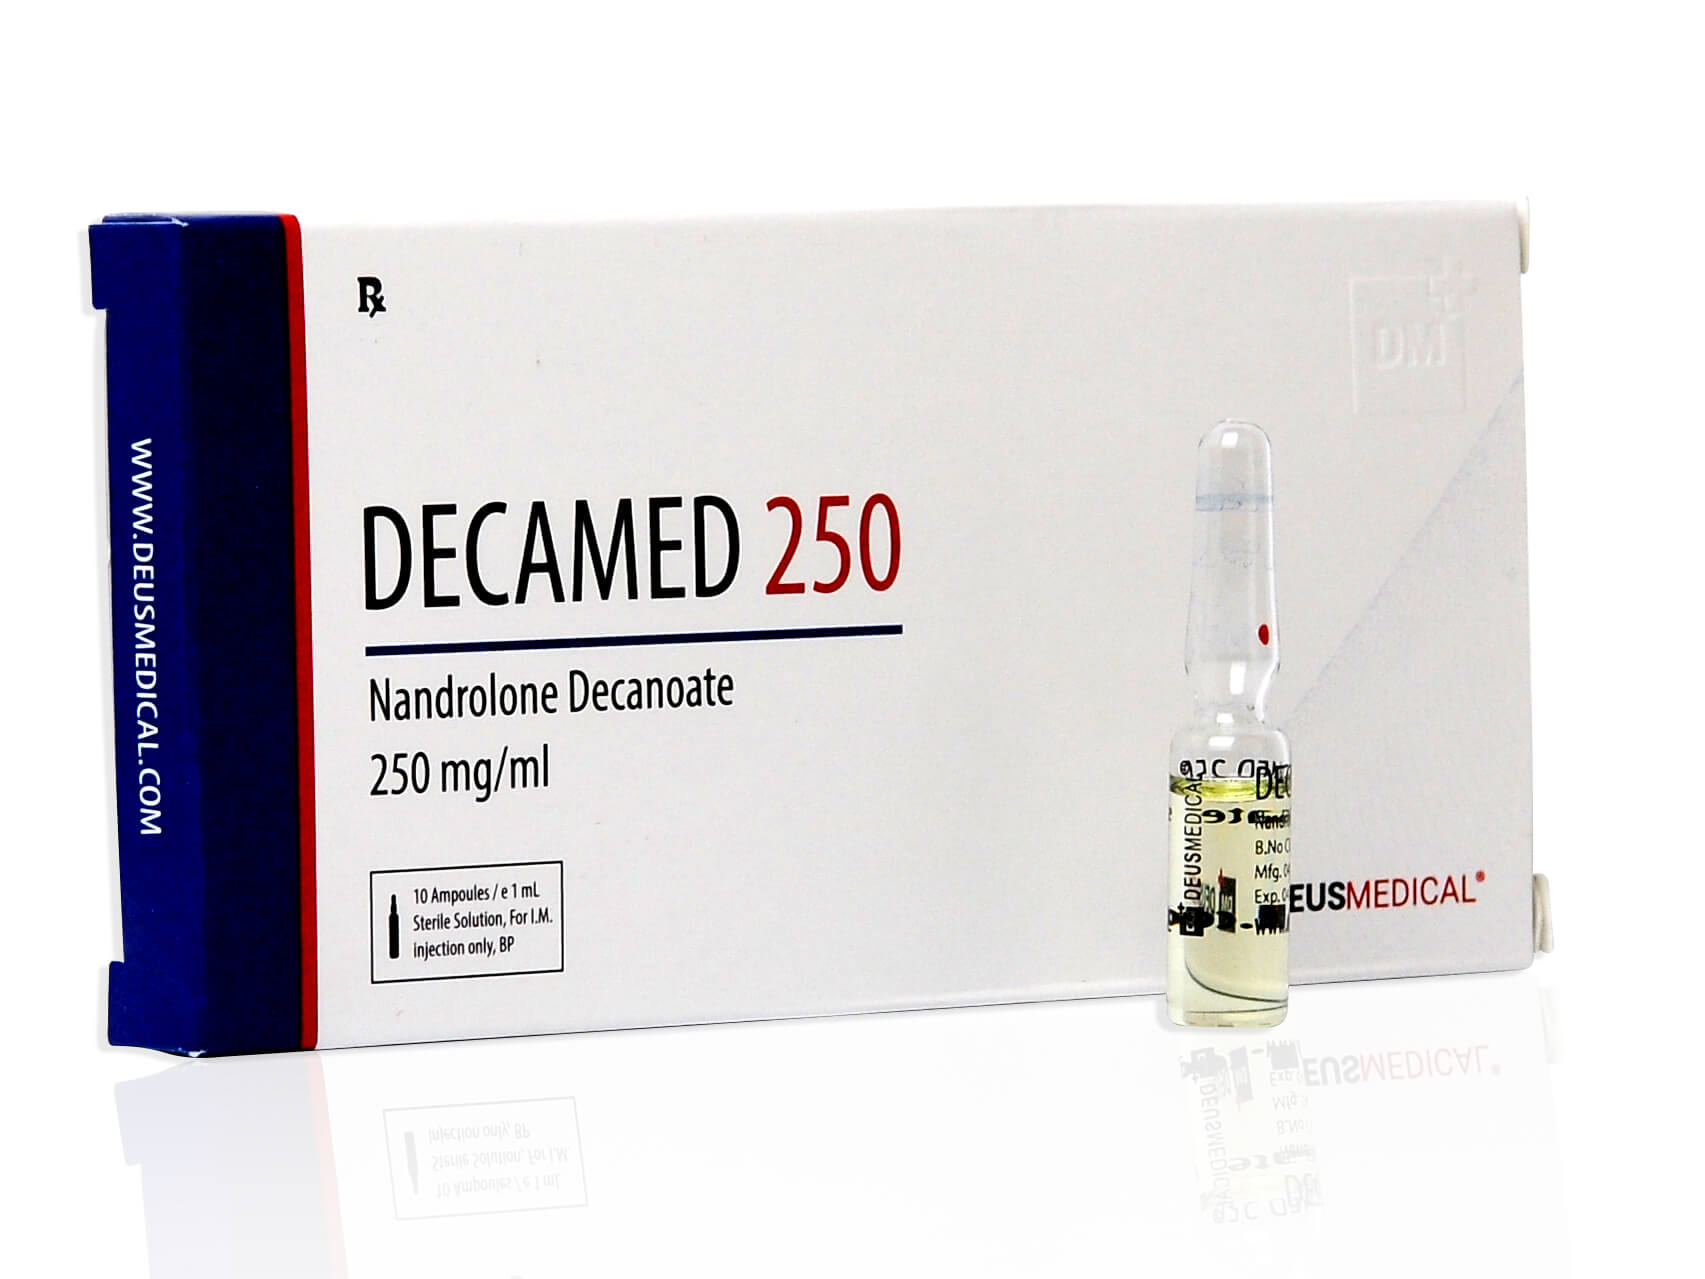 DECAMED 250 (Nandrolone Decanoate) - 10amps of 1ml - DEUS